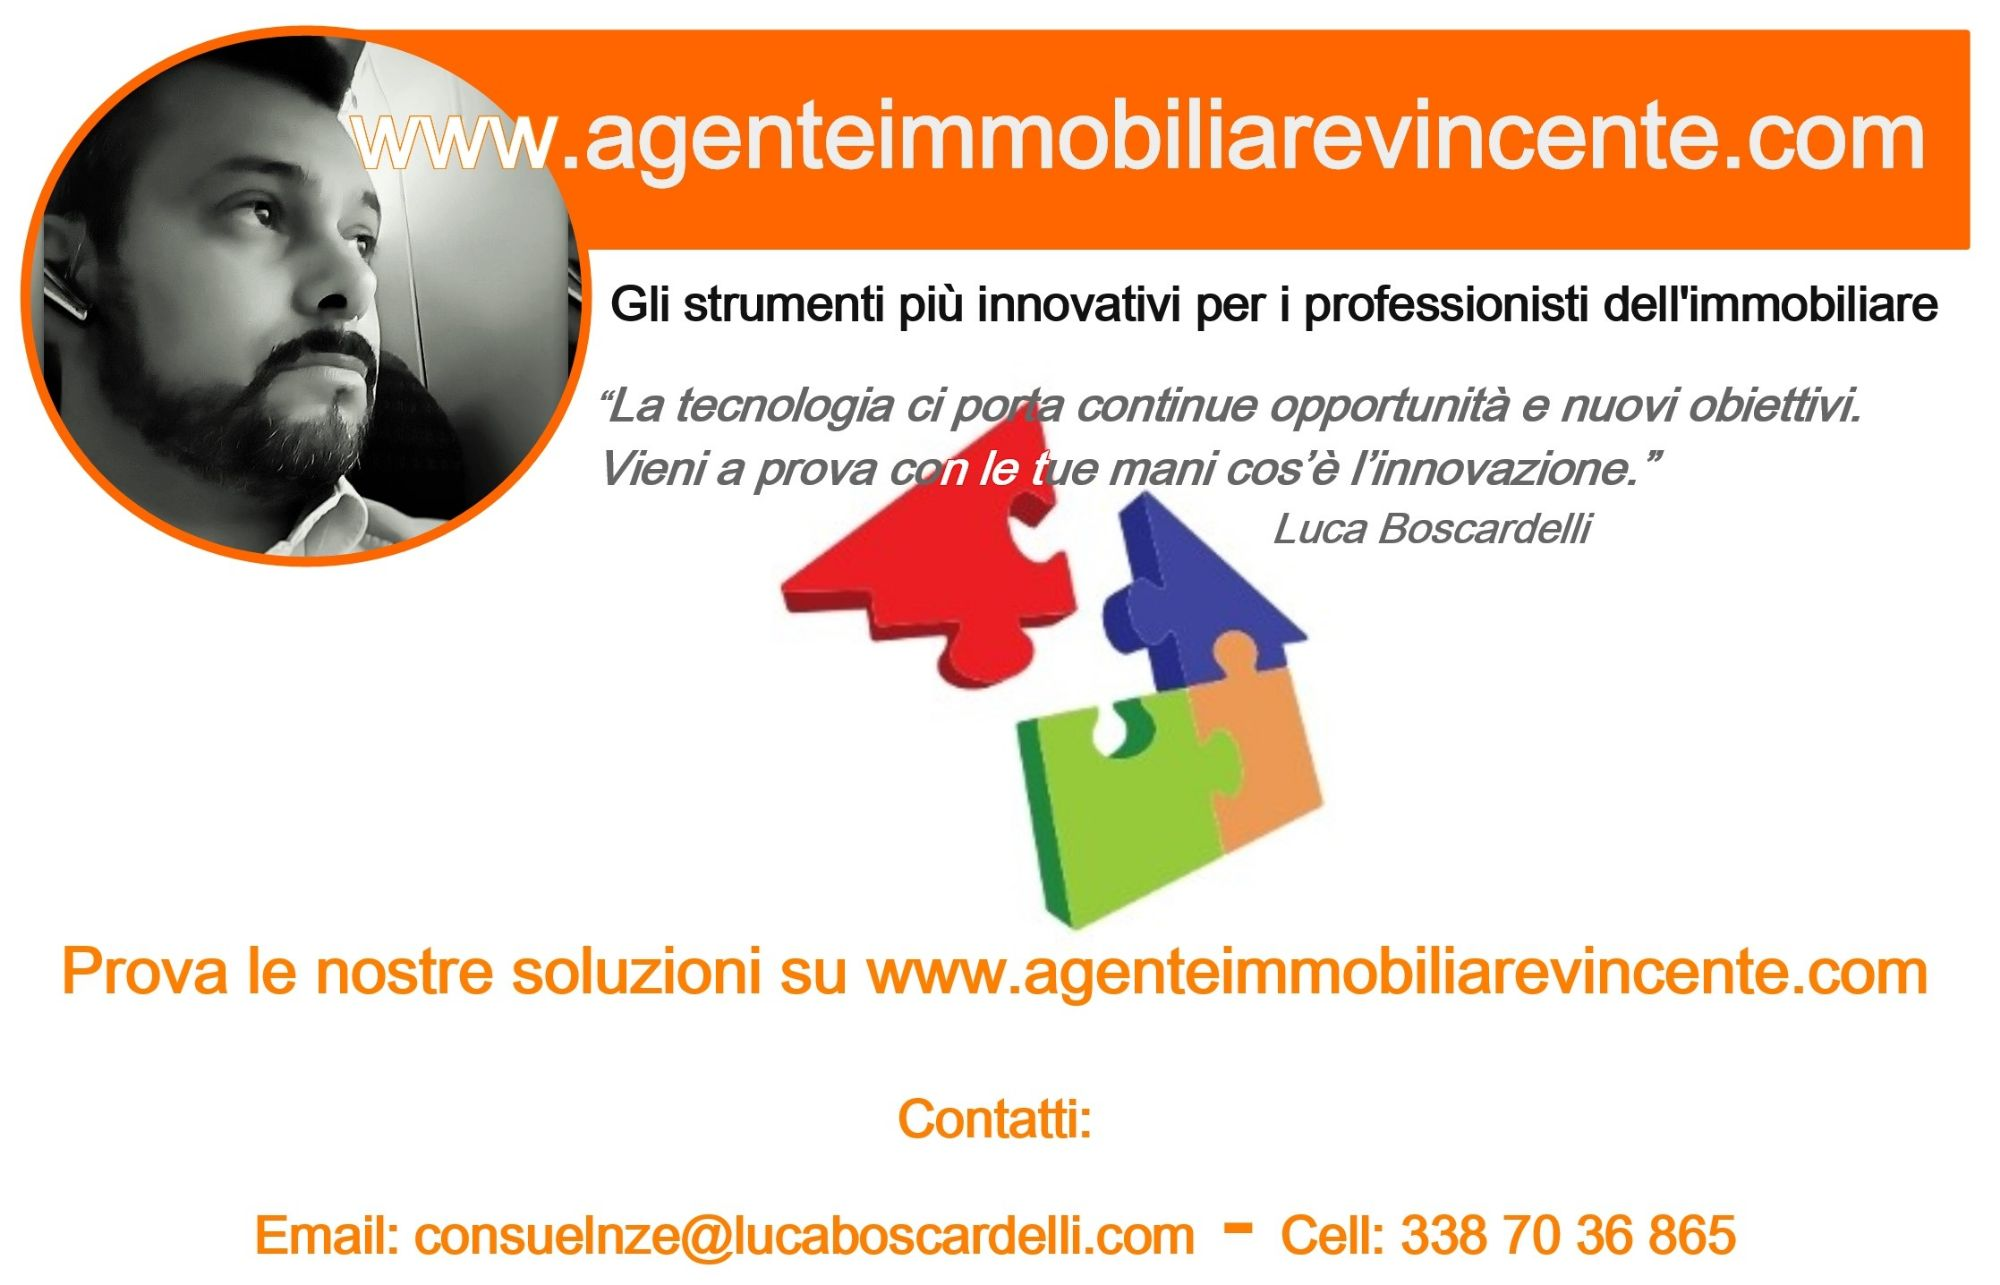 Evento AIR ITALIA venite a conoscere #PerAcquisire - #SmsMarketing - Skanner - iRealtors